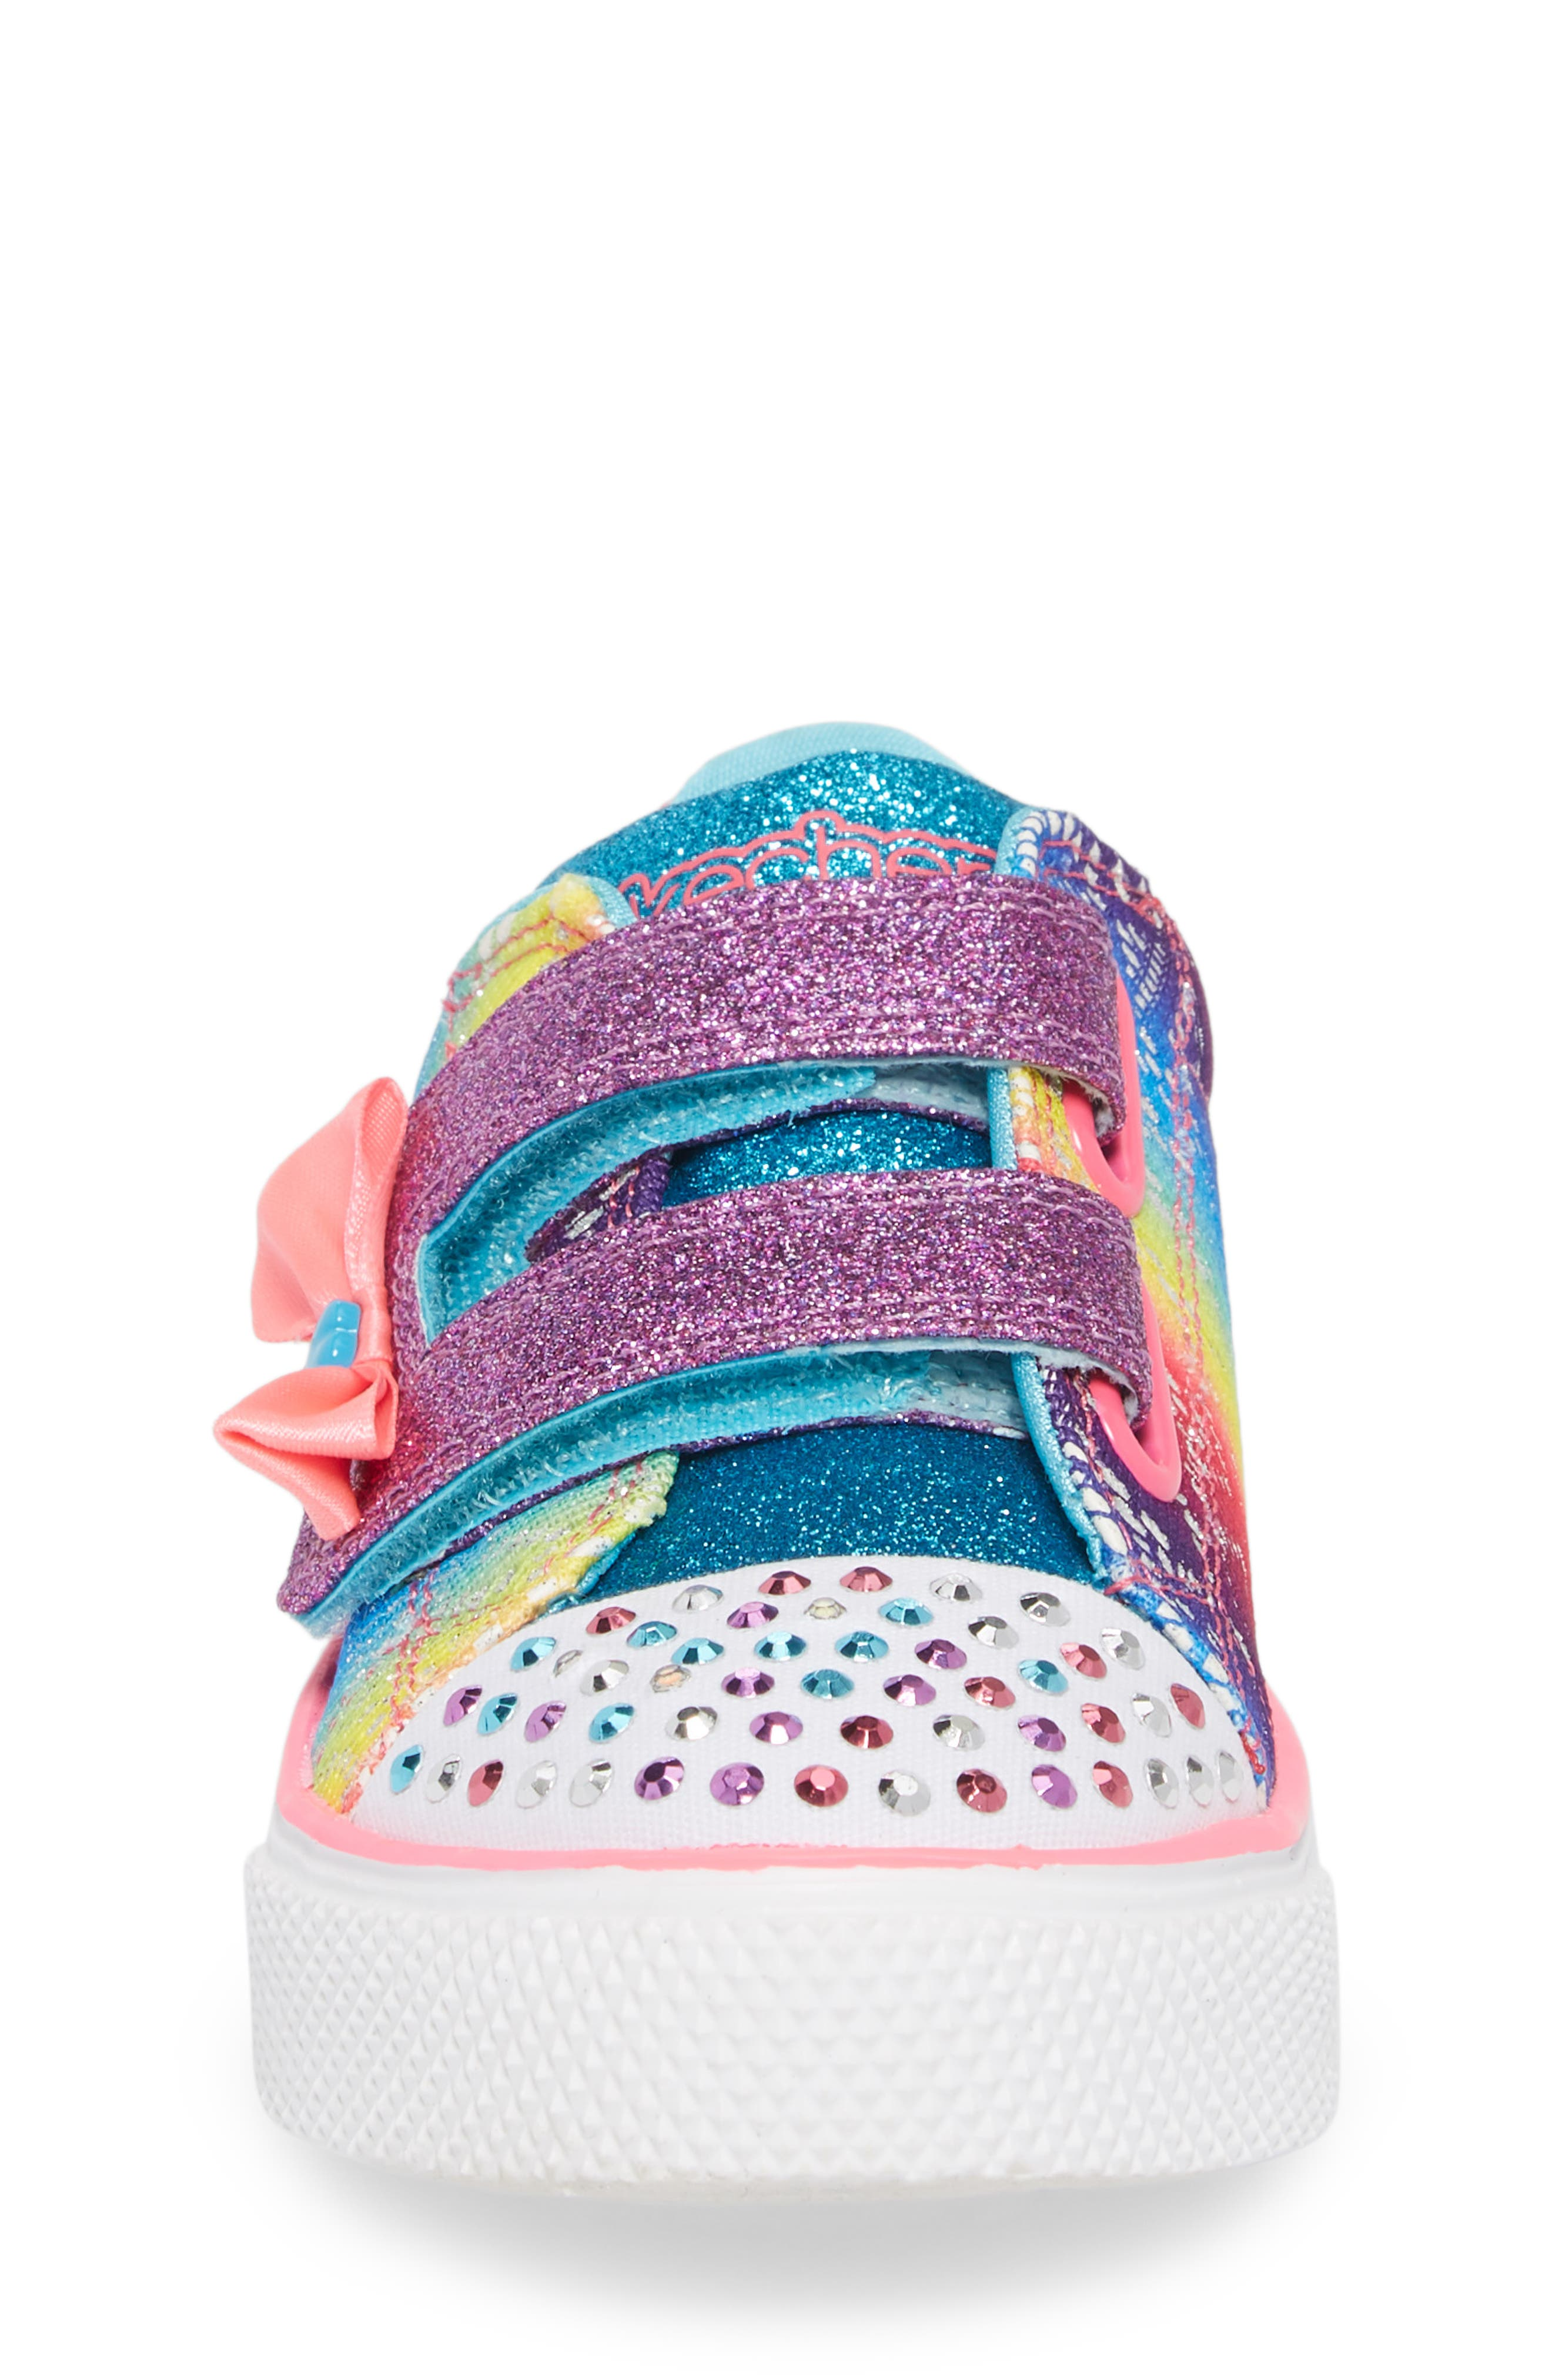 Twinkle Toes Breeze 2.0 Light-Up Sneaker,                             Alternate thumbnail 4, color,                             650